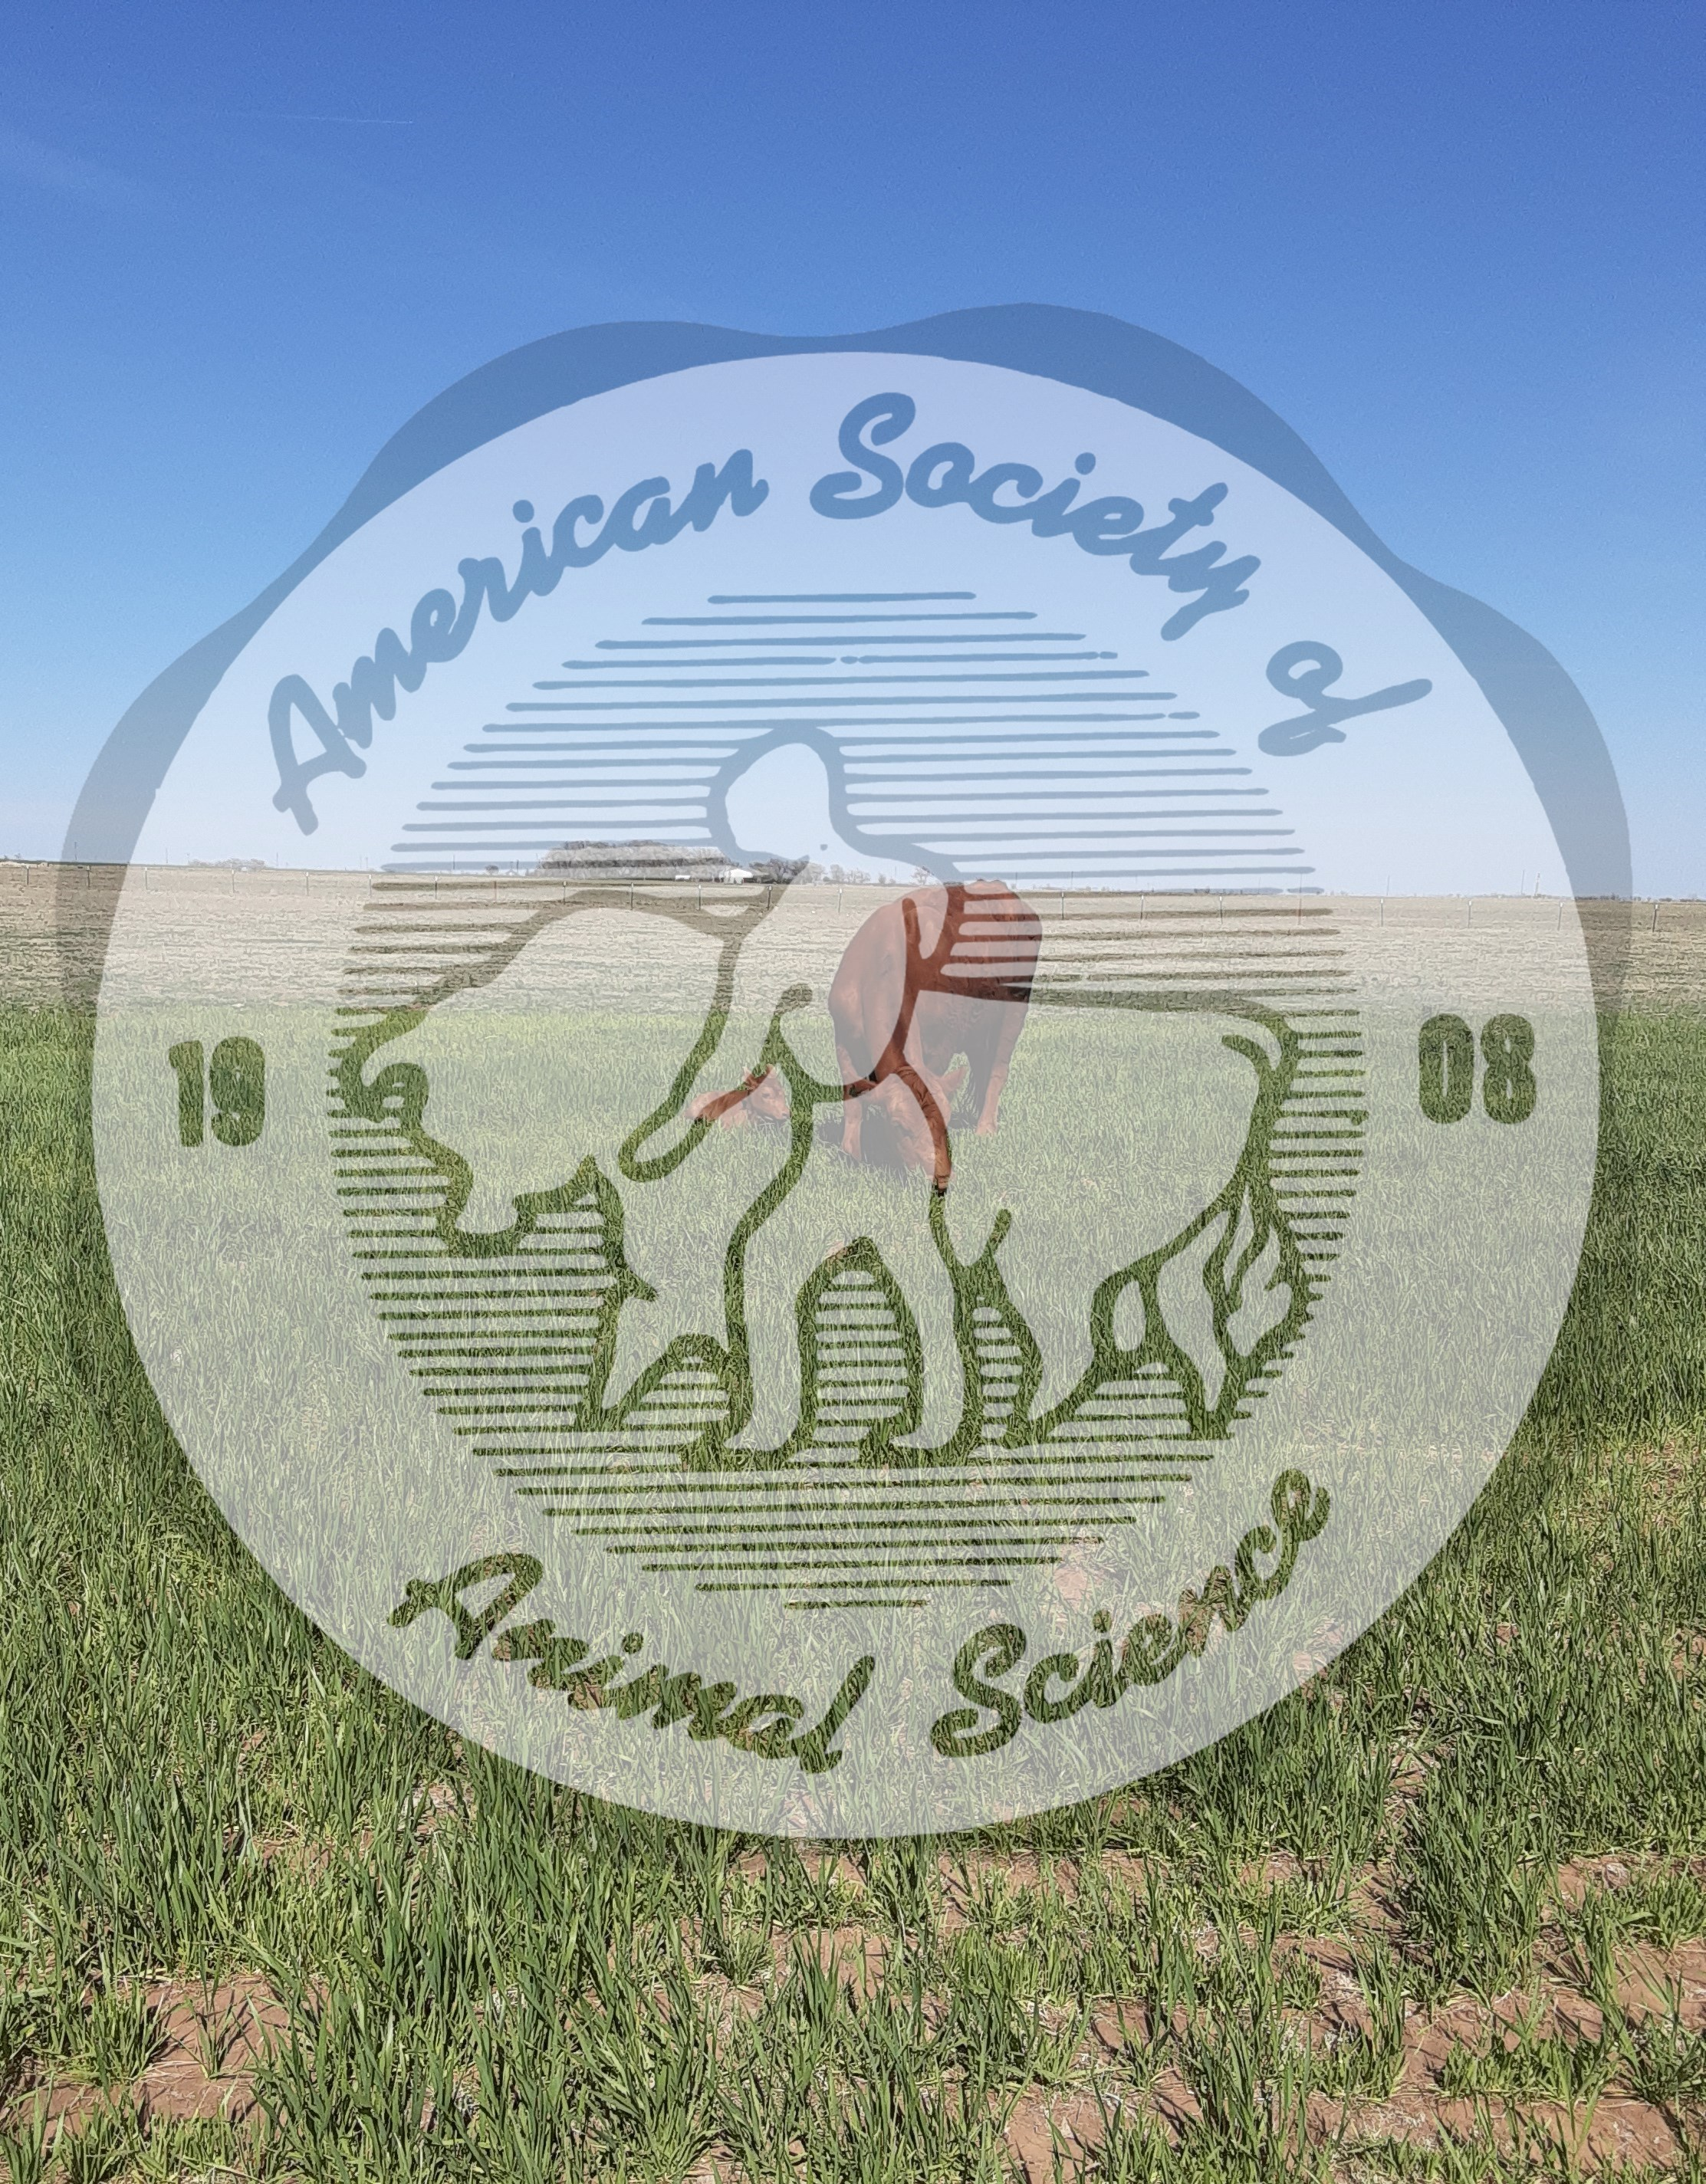 Picture taken of a newborn Balancer calf with a purebred Gelbvieh. Gelbvieh cattle originated in southern Germany.  The cattle are known for their maternal traits, increased rate of gain and  improved feed efficiency.  In addition, Gelbvieh cattle are medium to large framed and docile.  Balancer cattle are a recognized hybrid seedstock that are registered with the American Gelbvieh Association.  Balancer cattle are 25 to 75% Gelbvieh with the balance Angus or Red Angus.  The cow is a registered Gelbvieh and the calf is 50:50 Gelbvieh:Red Angus.